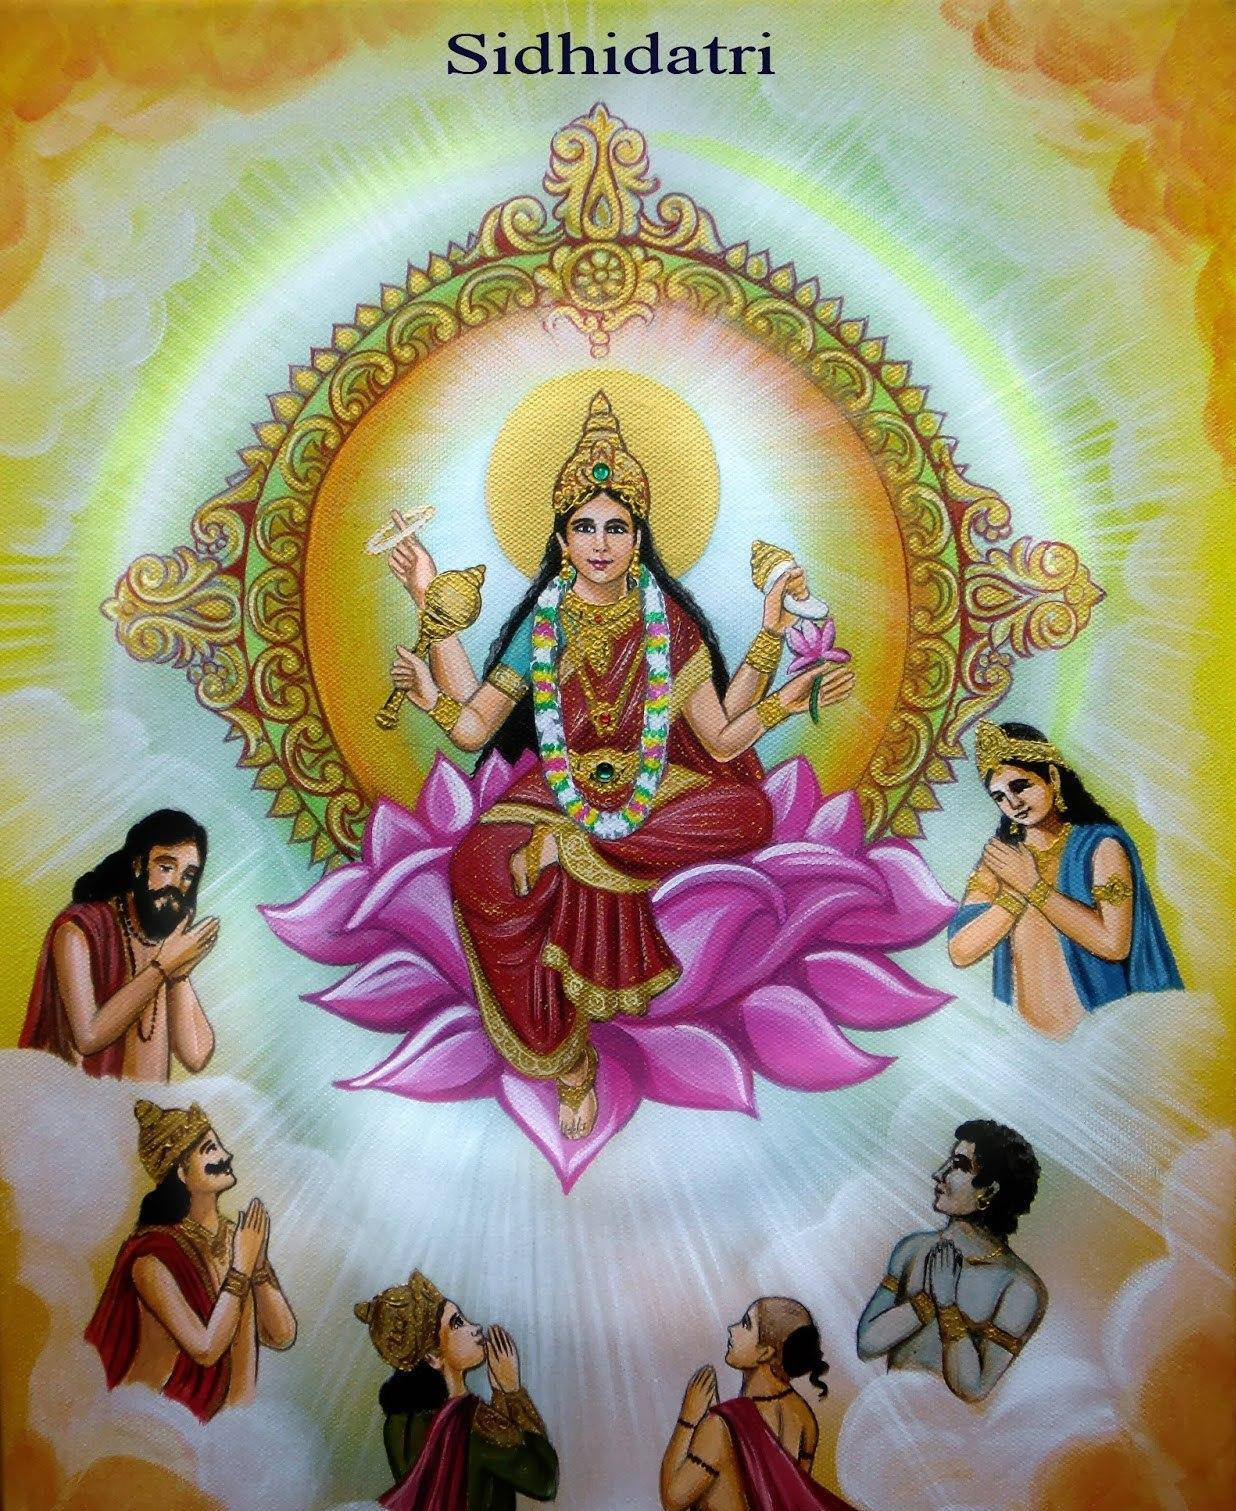 hindu-goddess-siddhidatri-one-of-the-form-of-lord-durga-devi